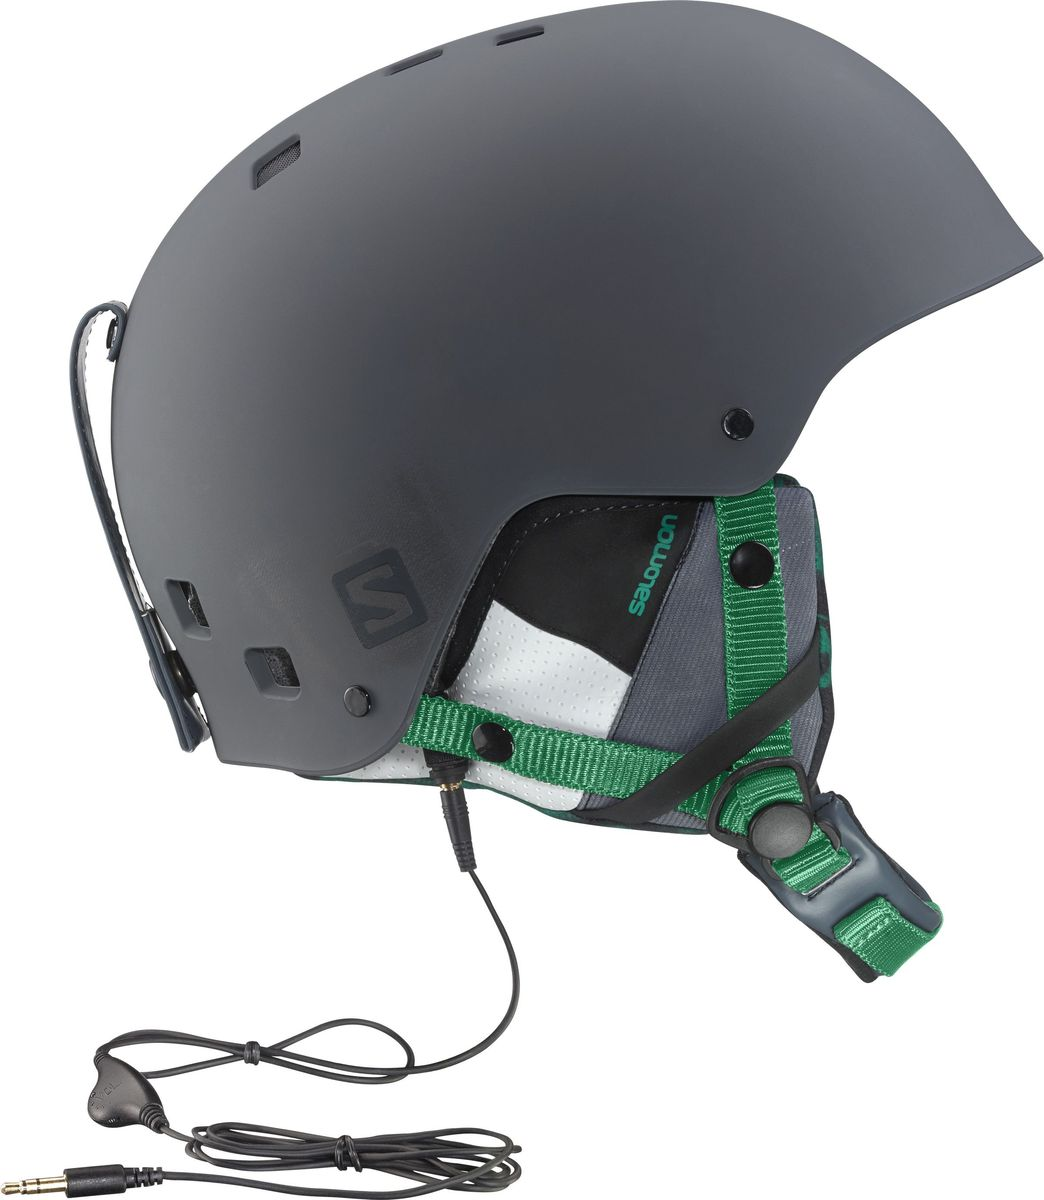 Шлем горнолыжный Salomon Helmet Brigade Audio Grey/Forest Gr. Размер L (58/59)